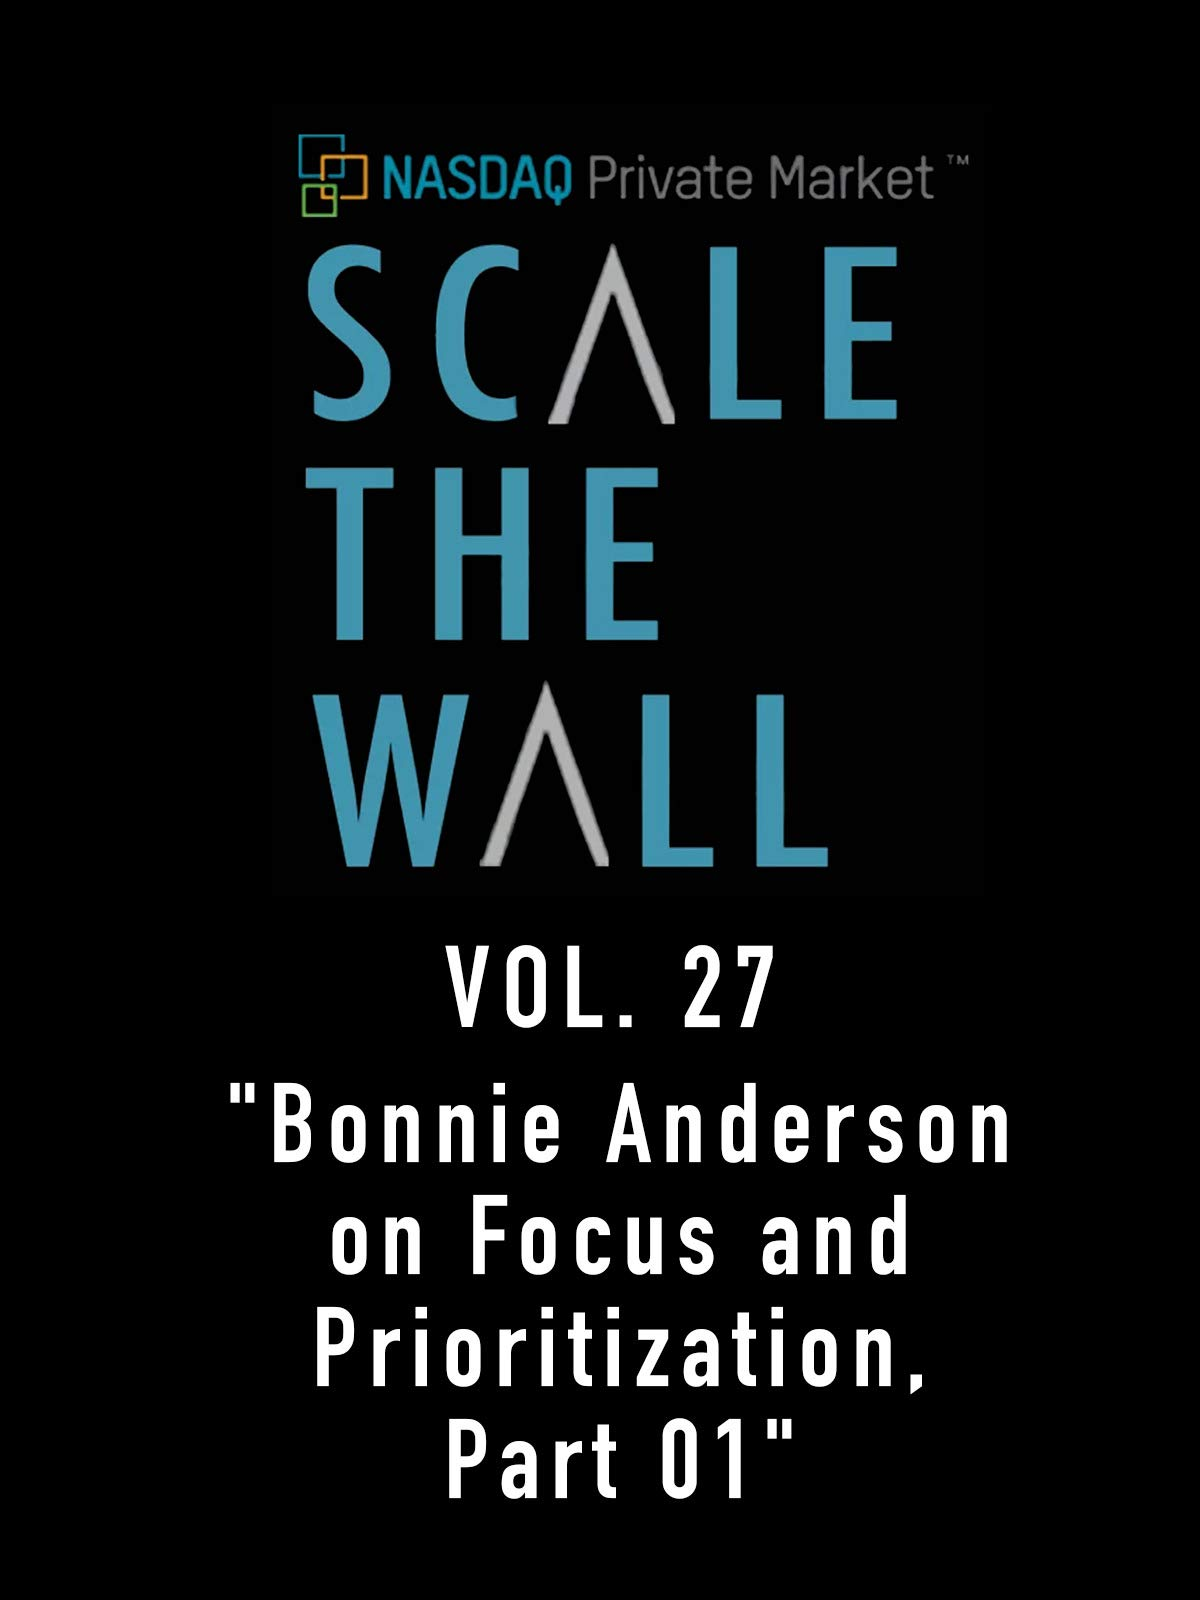 Scale the Wall Vol. 27